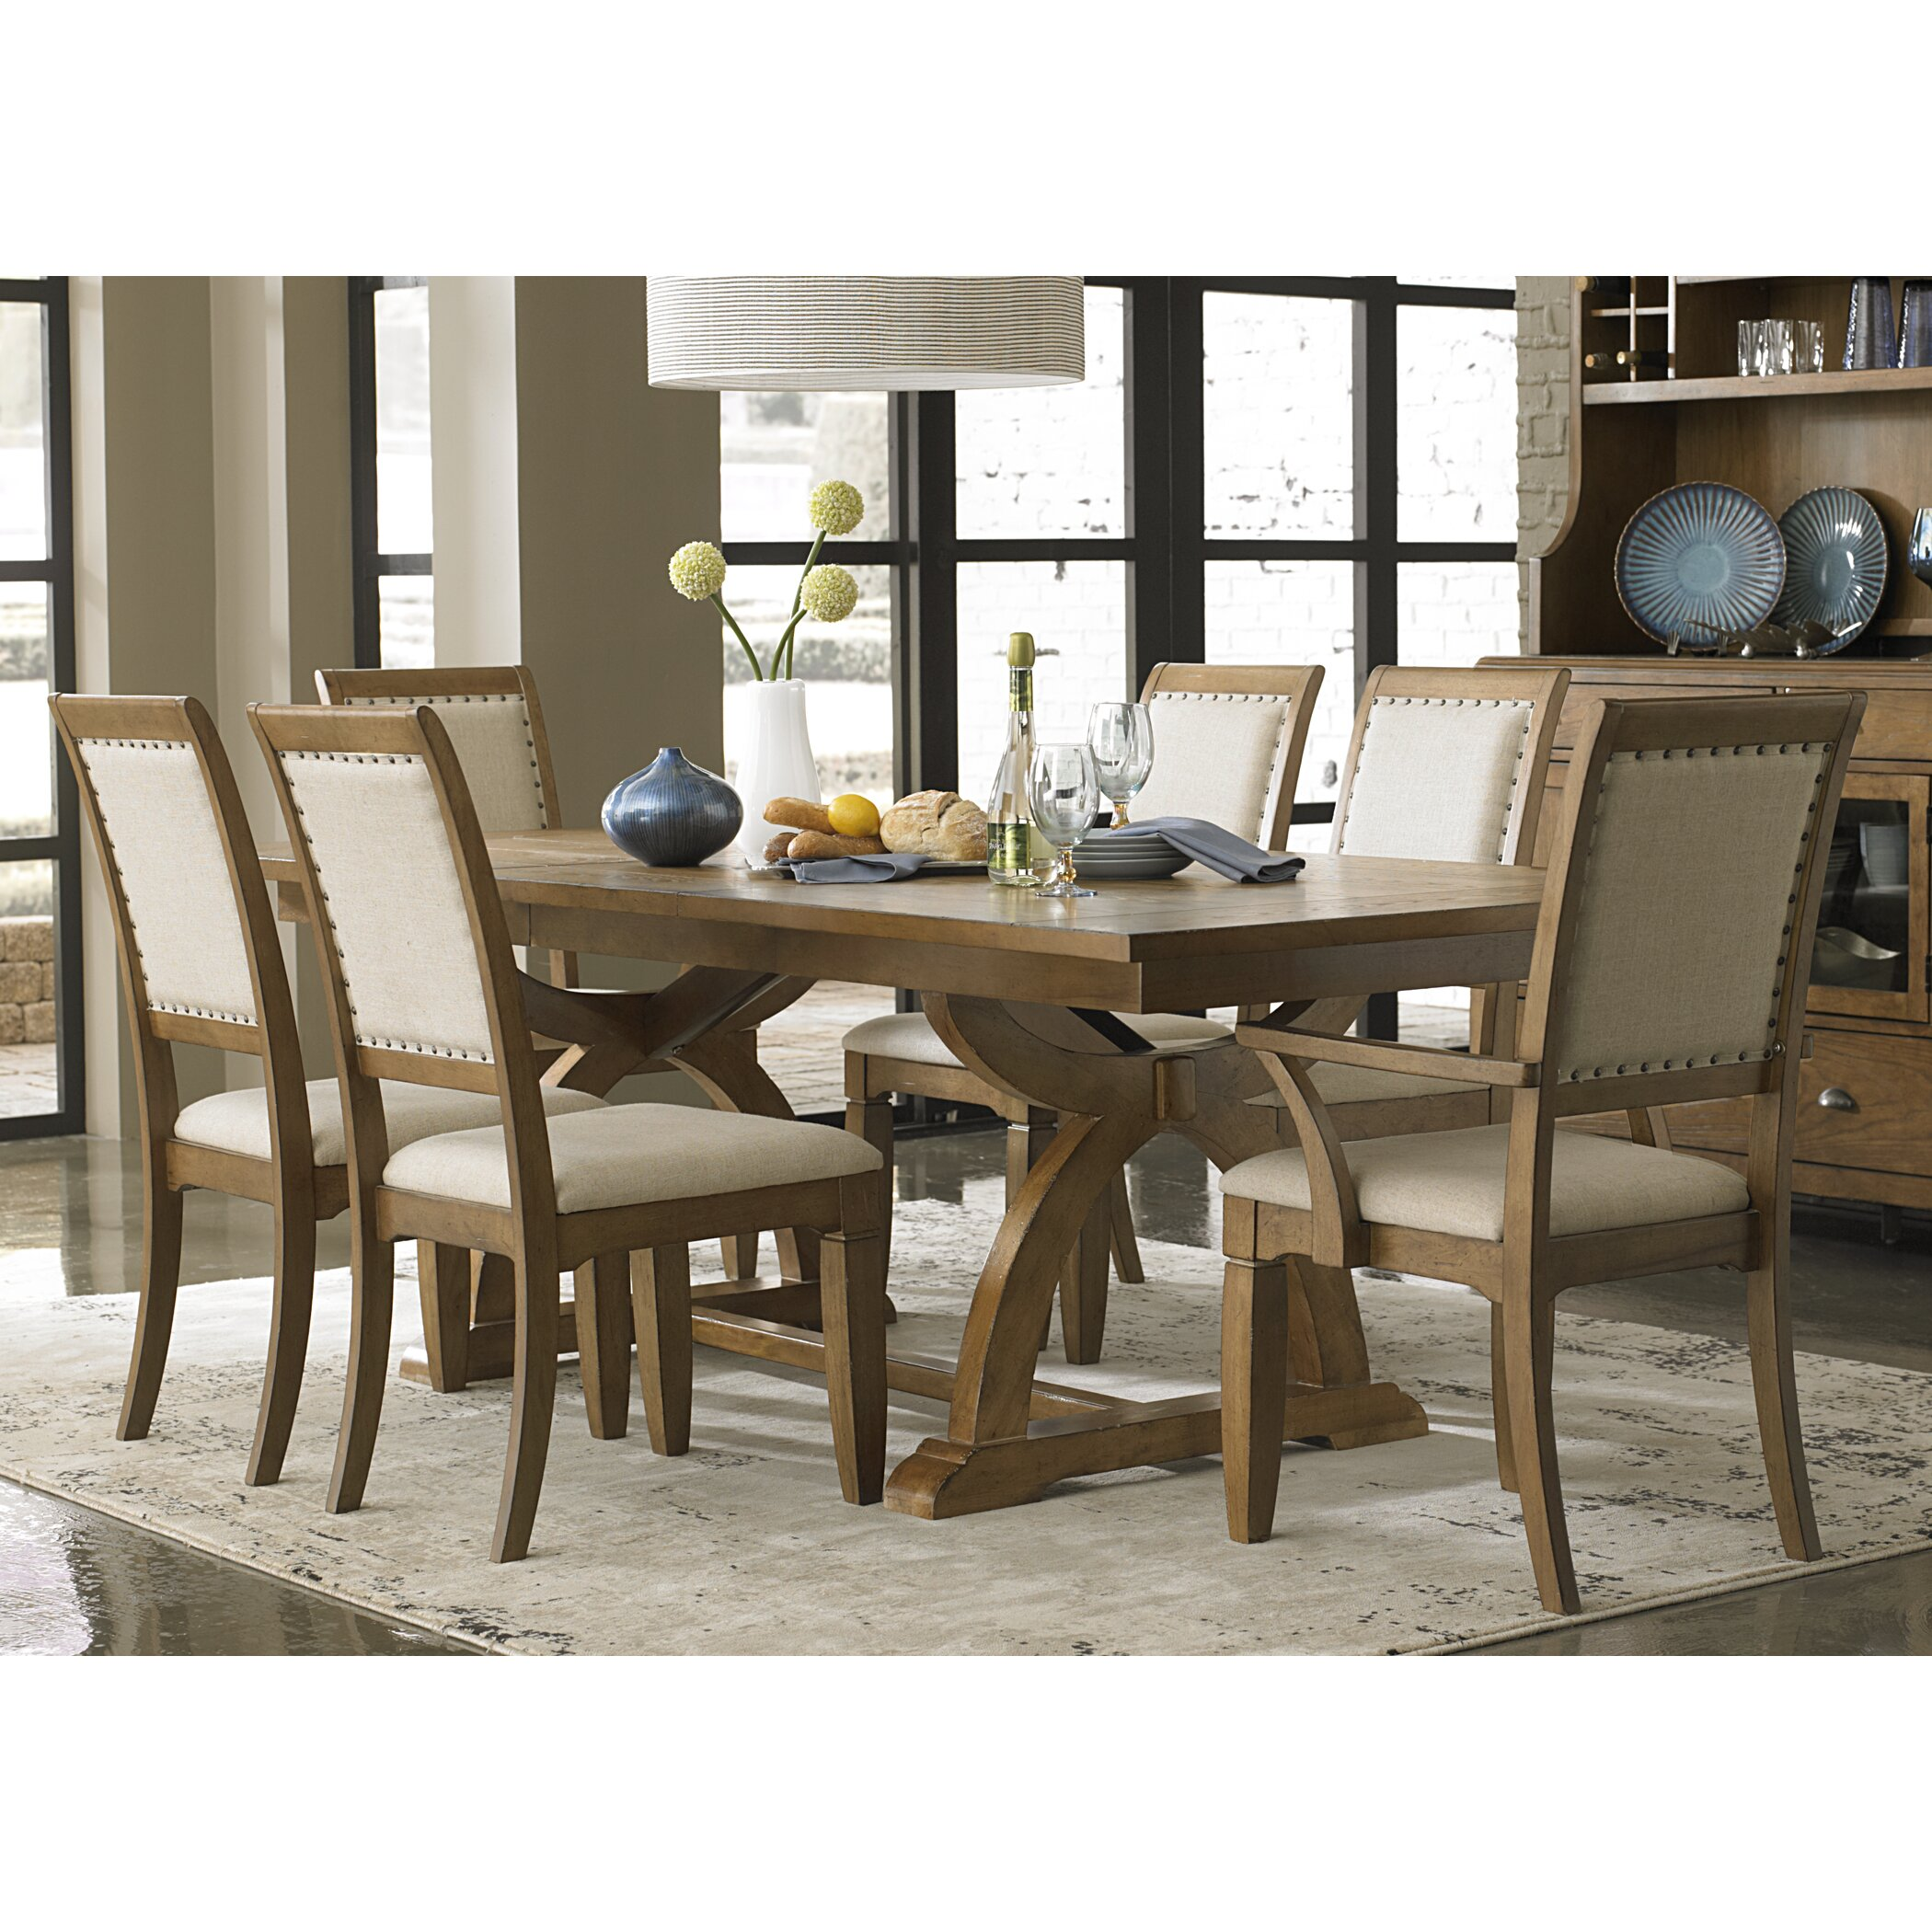 Liberty furniture town and country 7 piece dining set for 7 piece dining room set